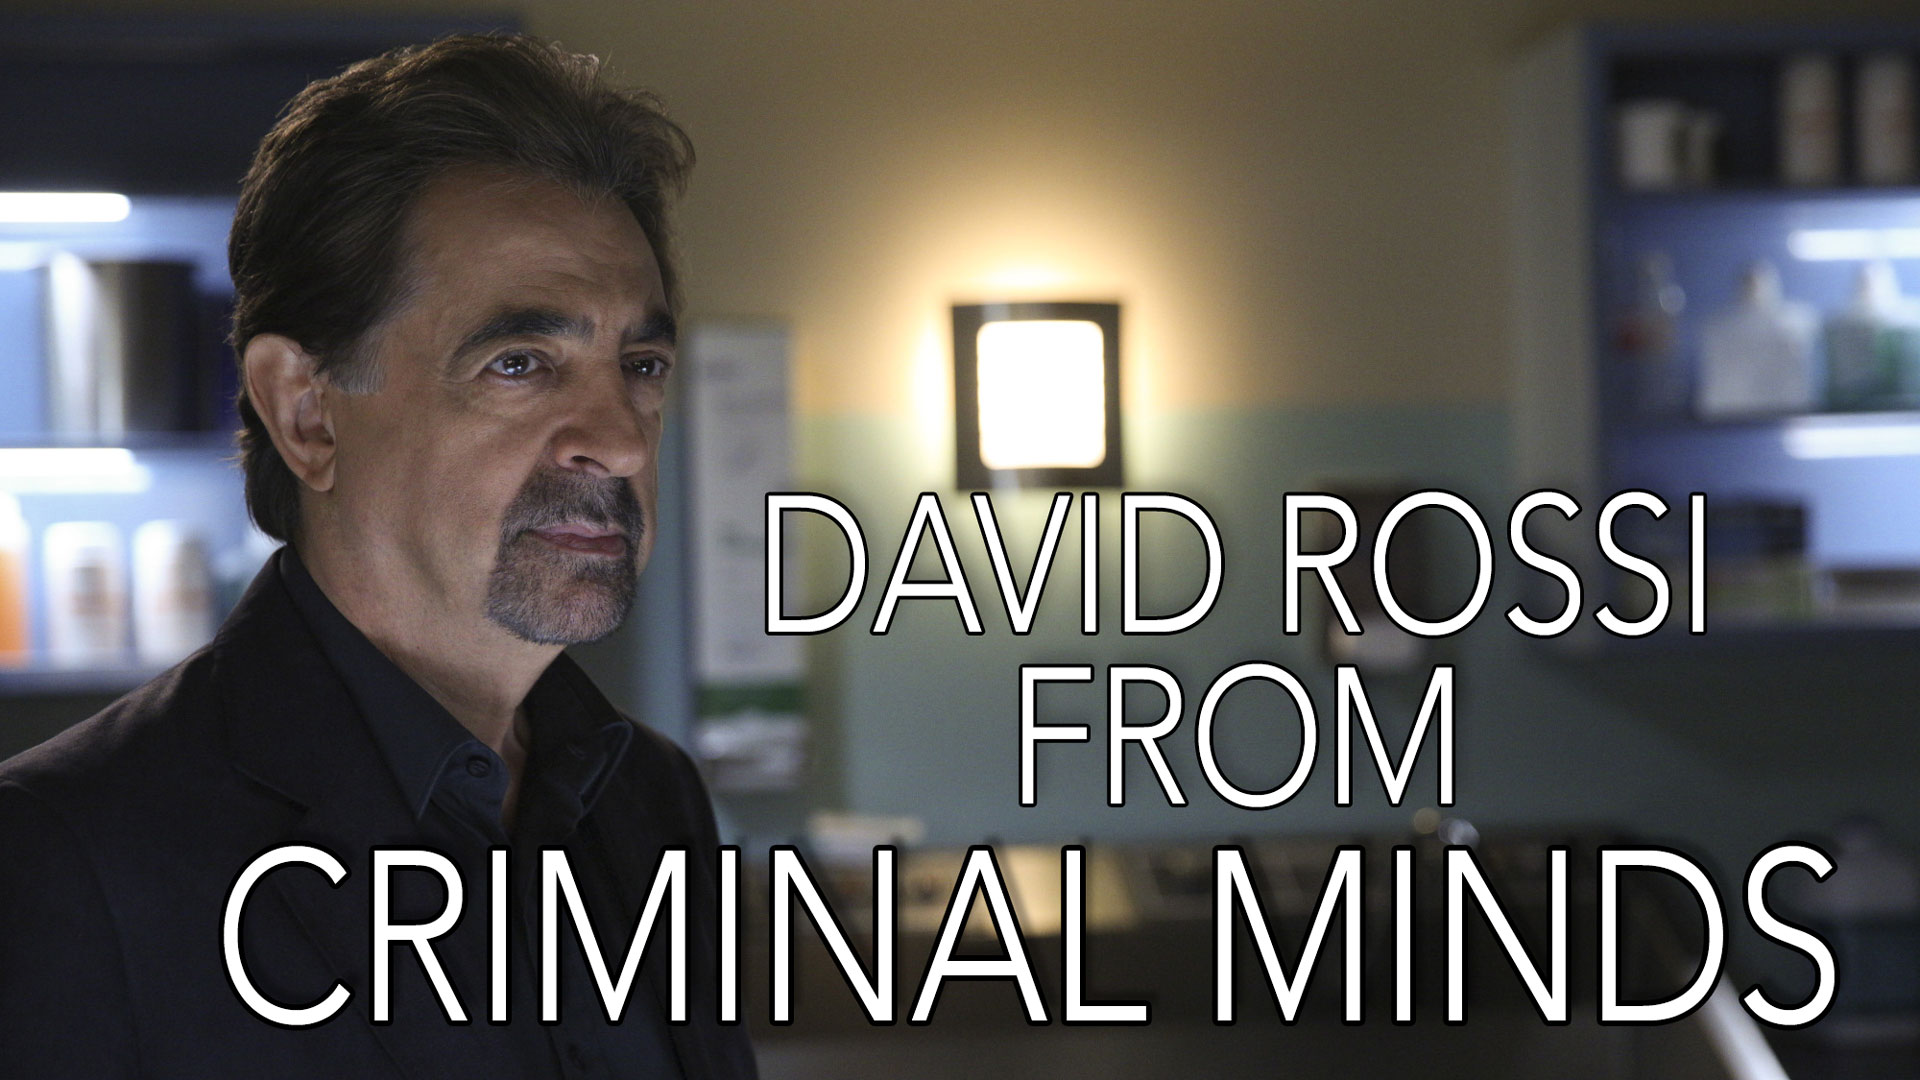 It's a line said by David Rossi on Criminal Minds!